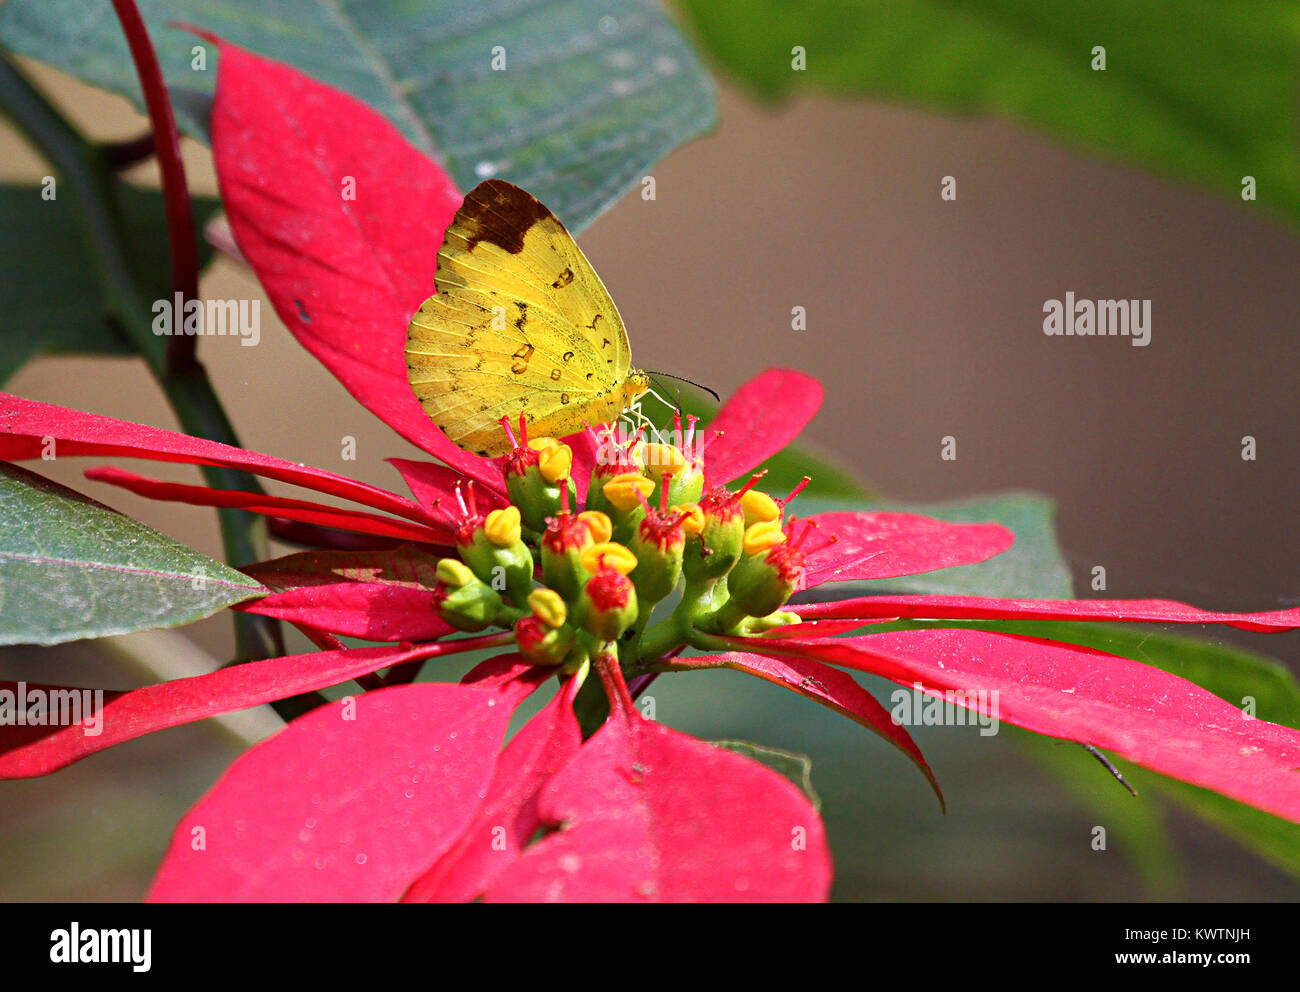 Three Spot Grass Yellow Butterfly on red leaves of Poinsettia plant - Stock Image